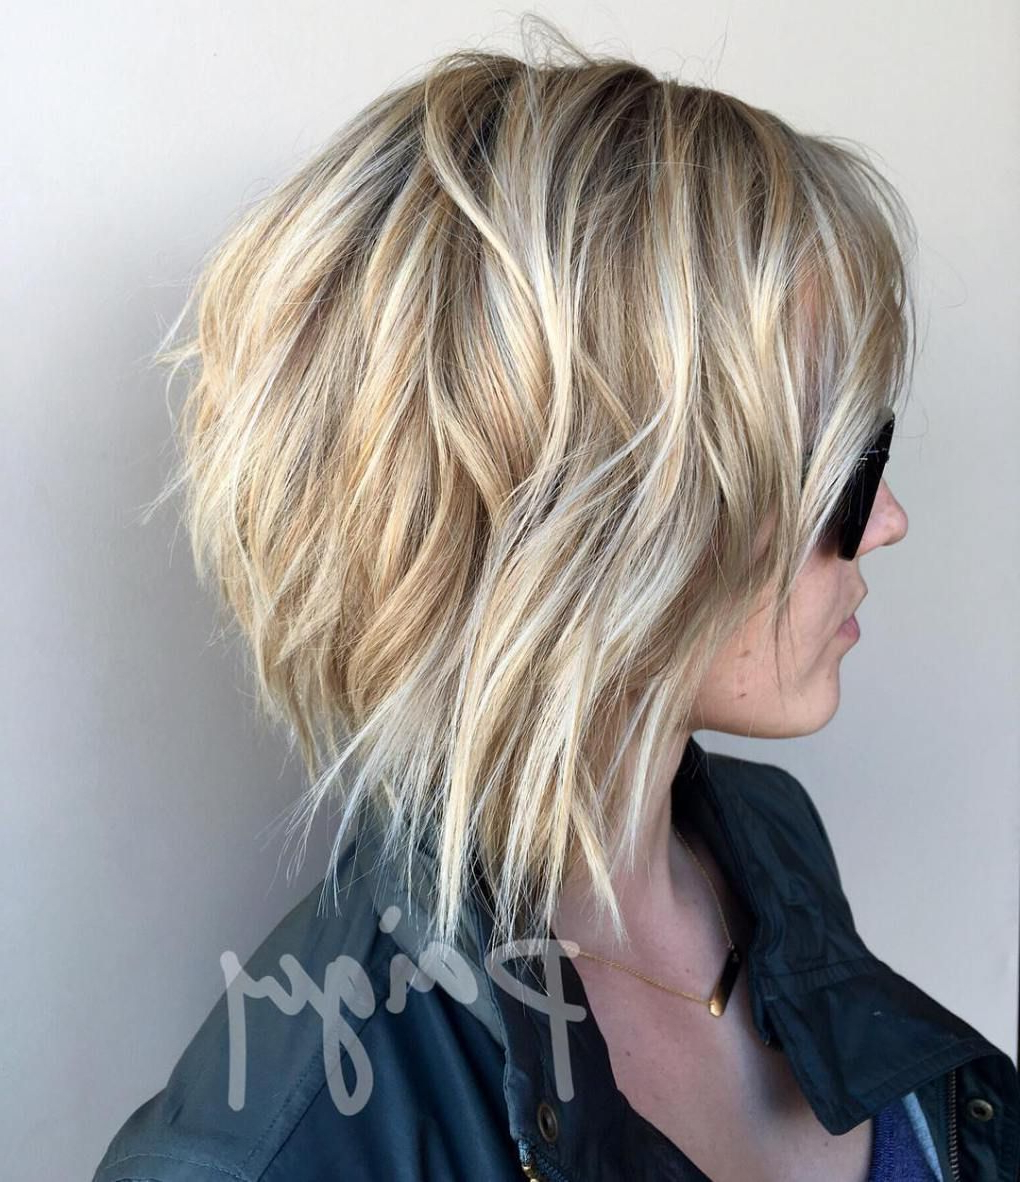 70 Fabulous Choppy Bob Hairstyles | Hair | Pinterest | Hair, Hair Pertaining To Tousled Razored Bob Hairstyles (View 13 of 20)